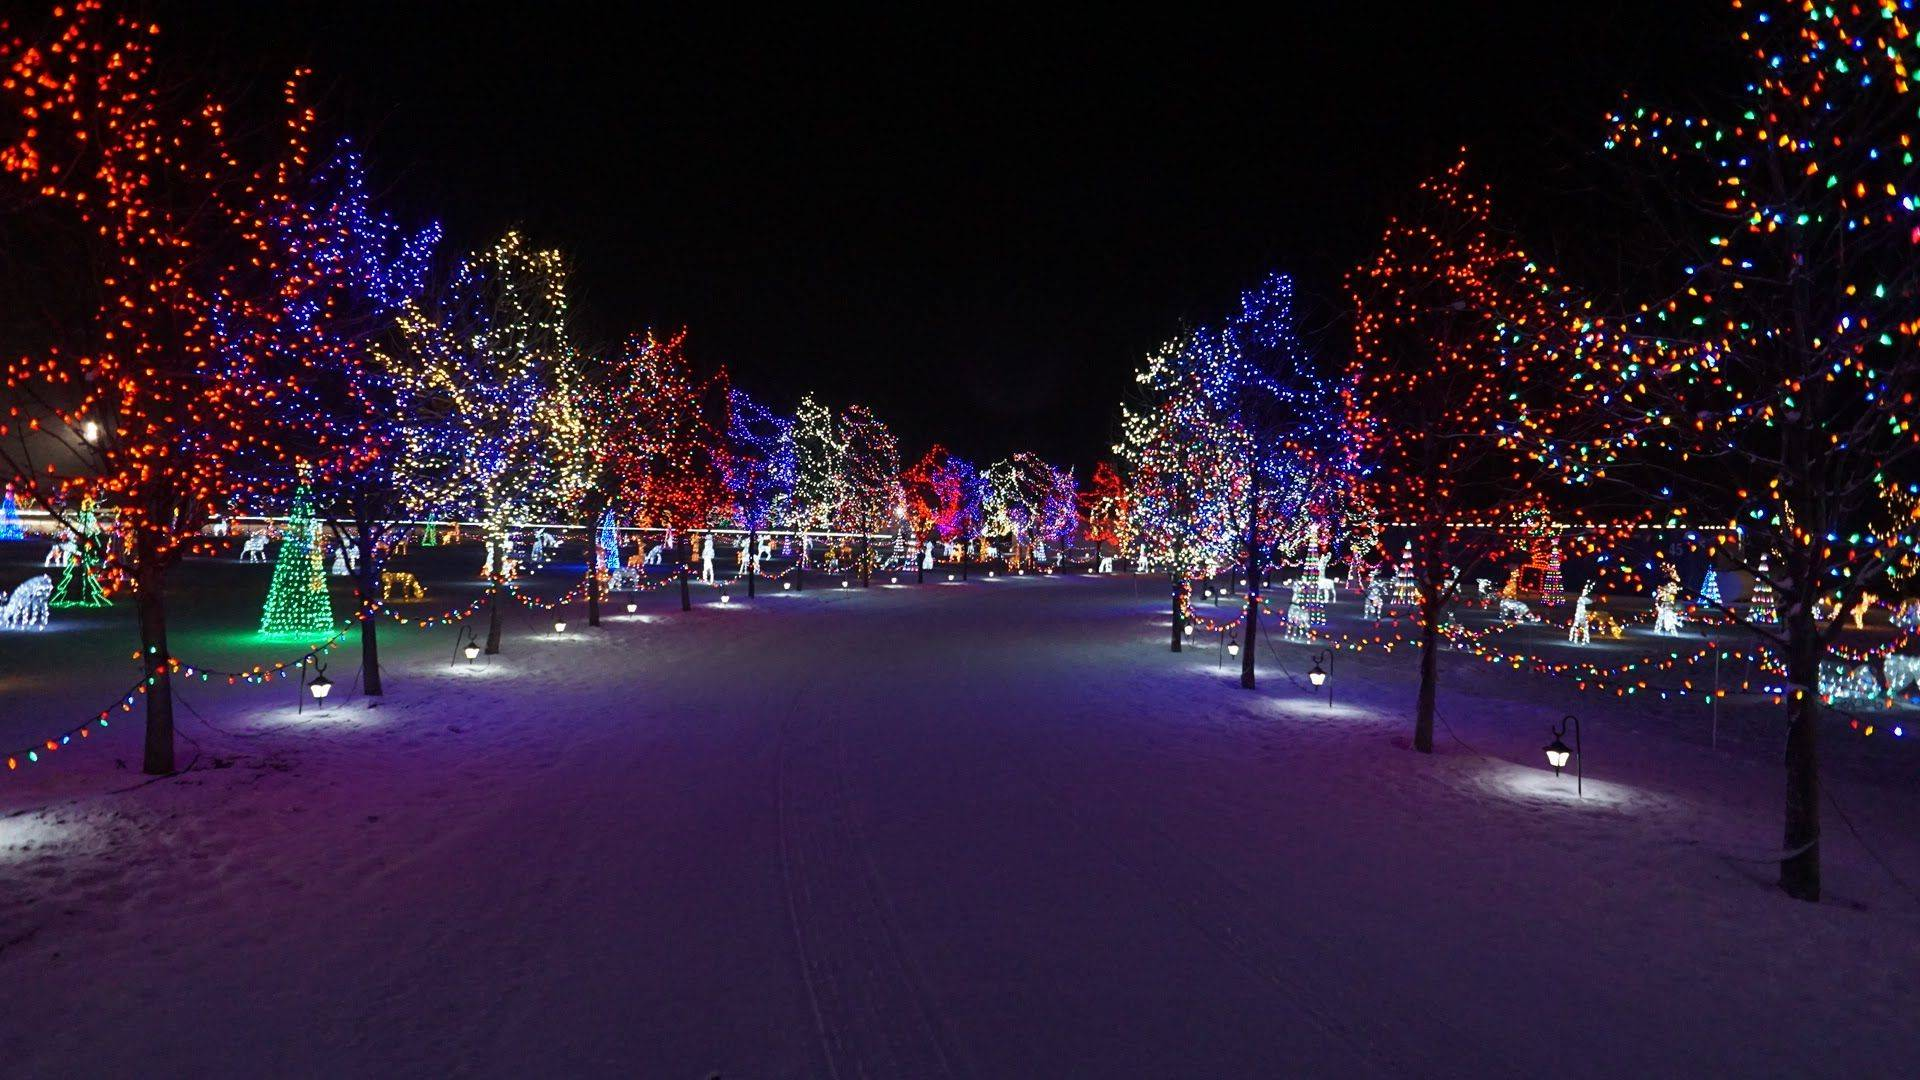 FINAL CALL FOR THE LEDUC COUNTRY LIGHTS